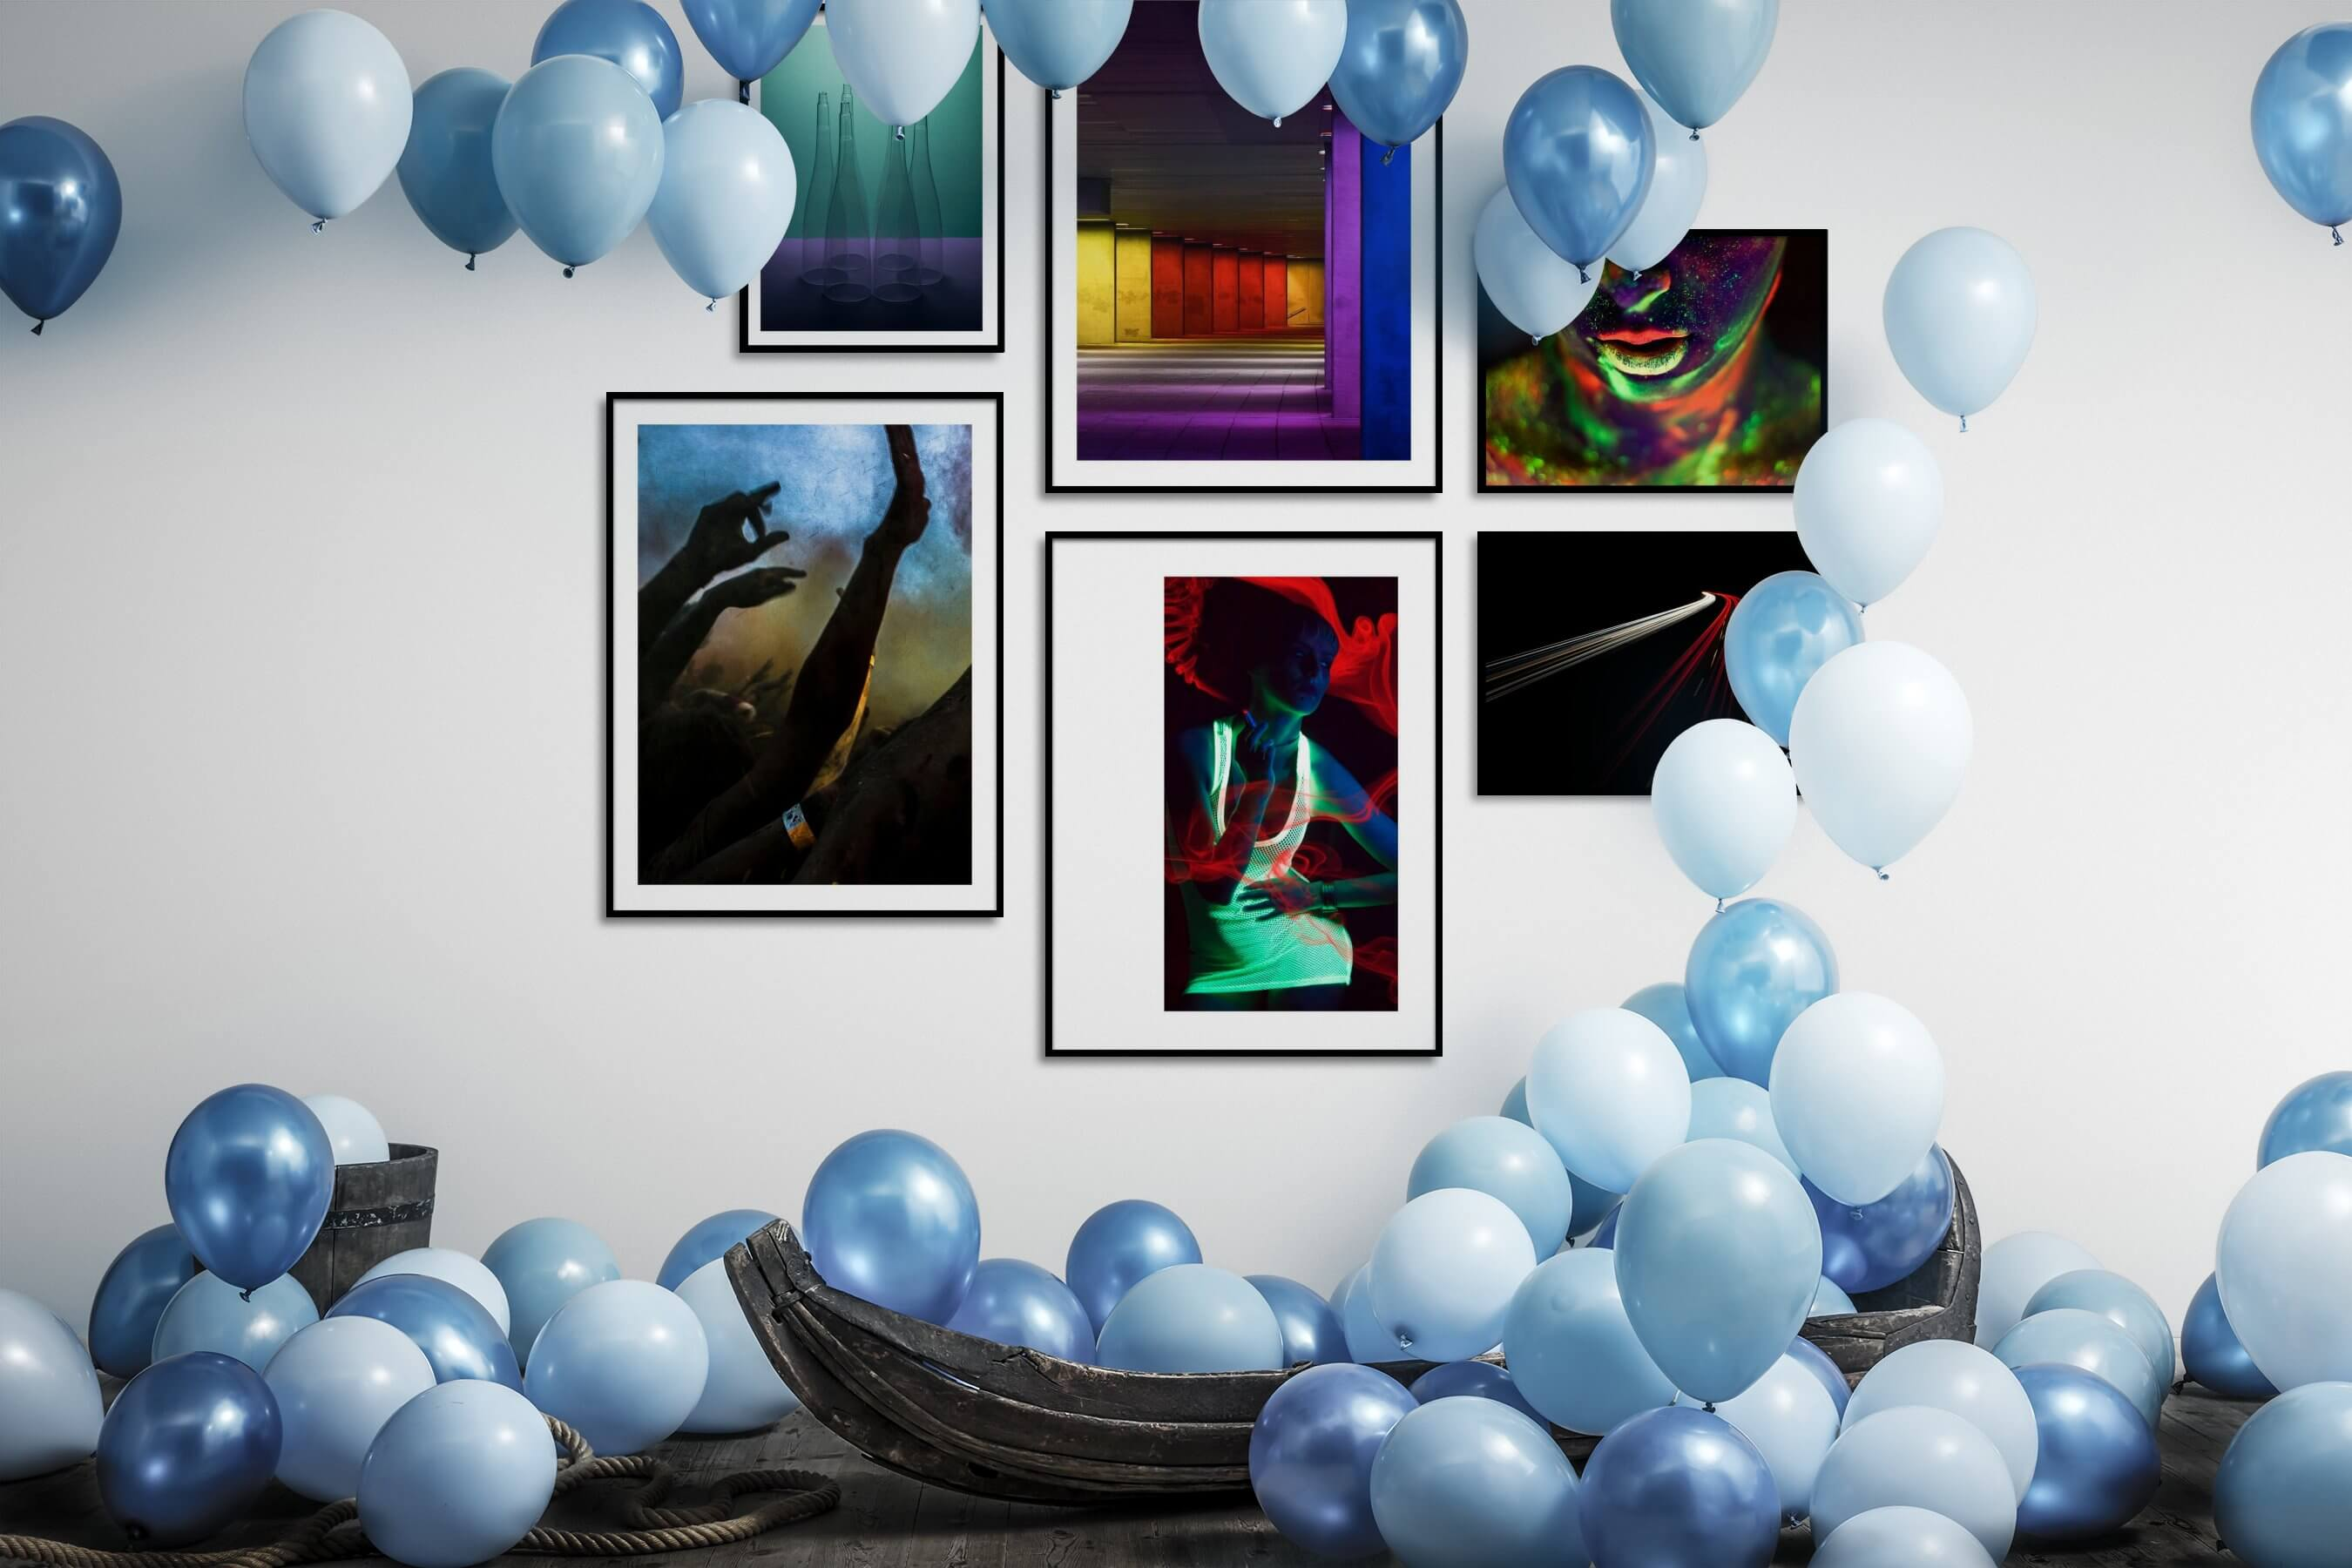 Gallery wall idea with six framed pictures arranged on a wall depicting For the Minimalist, Colorful, For the Moderate, City Life, Fashion & Beauty, and Dark Tones